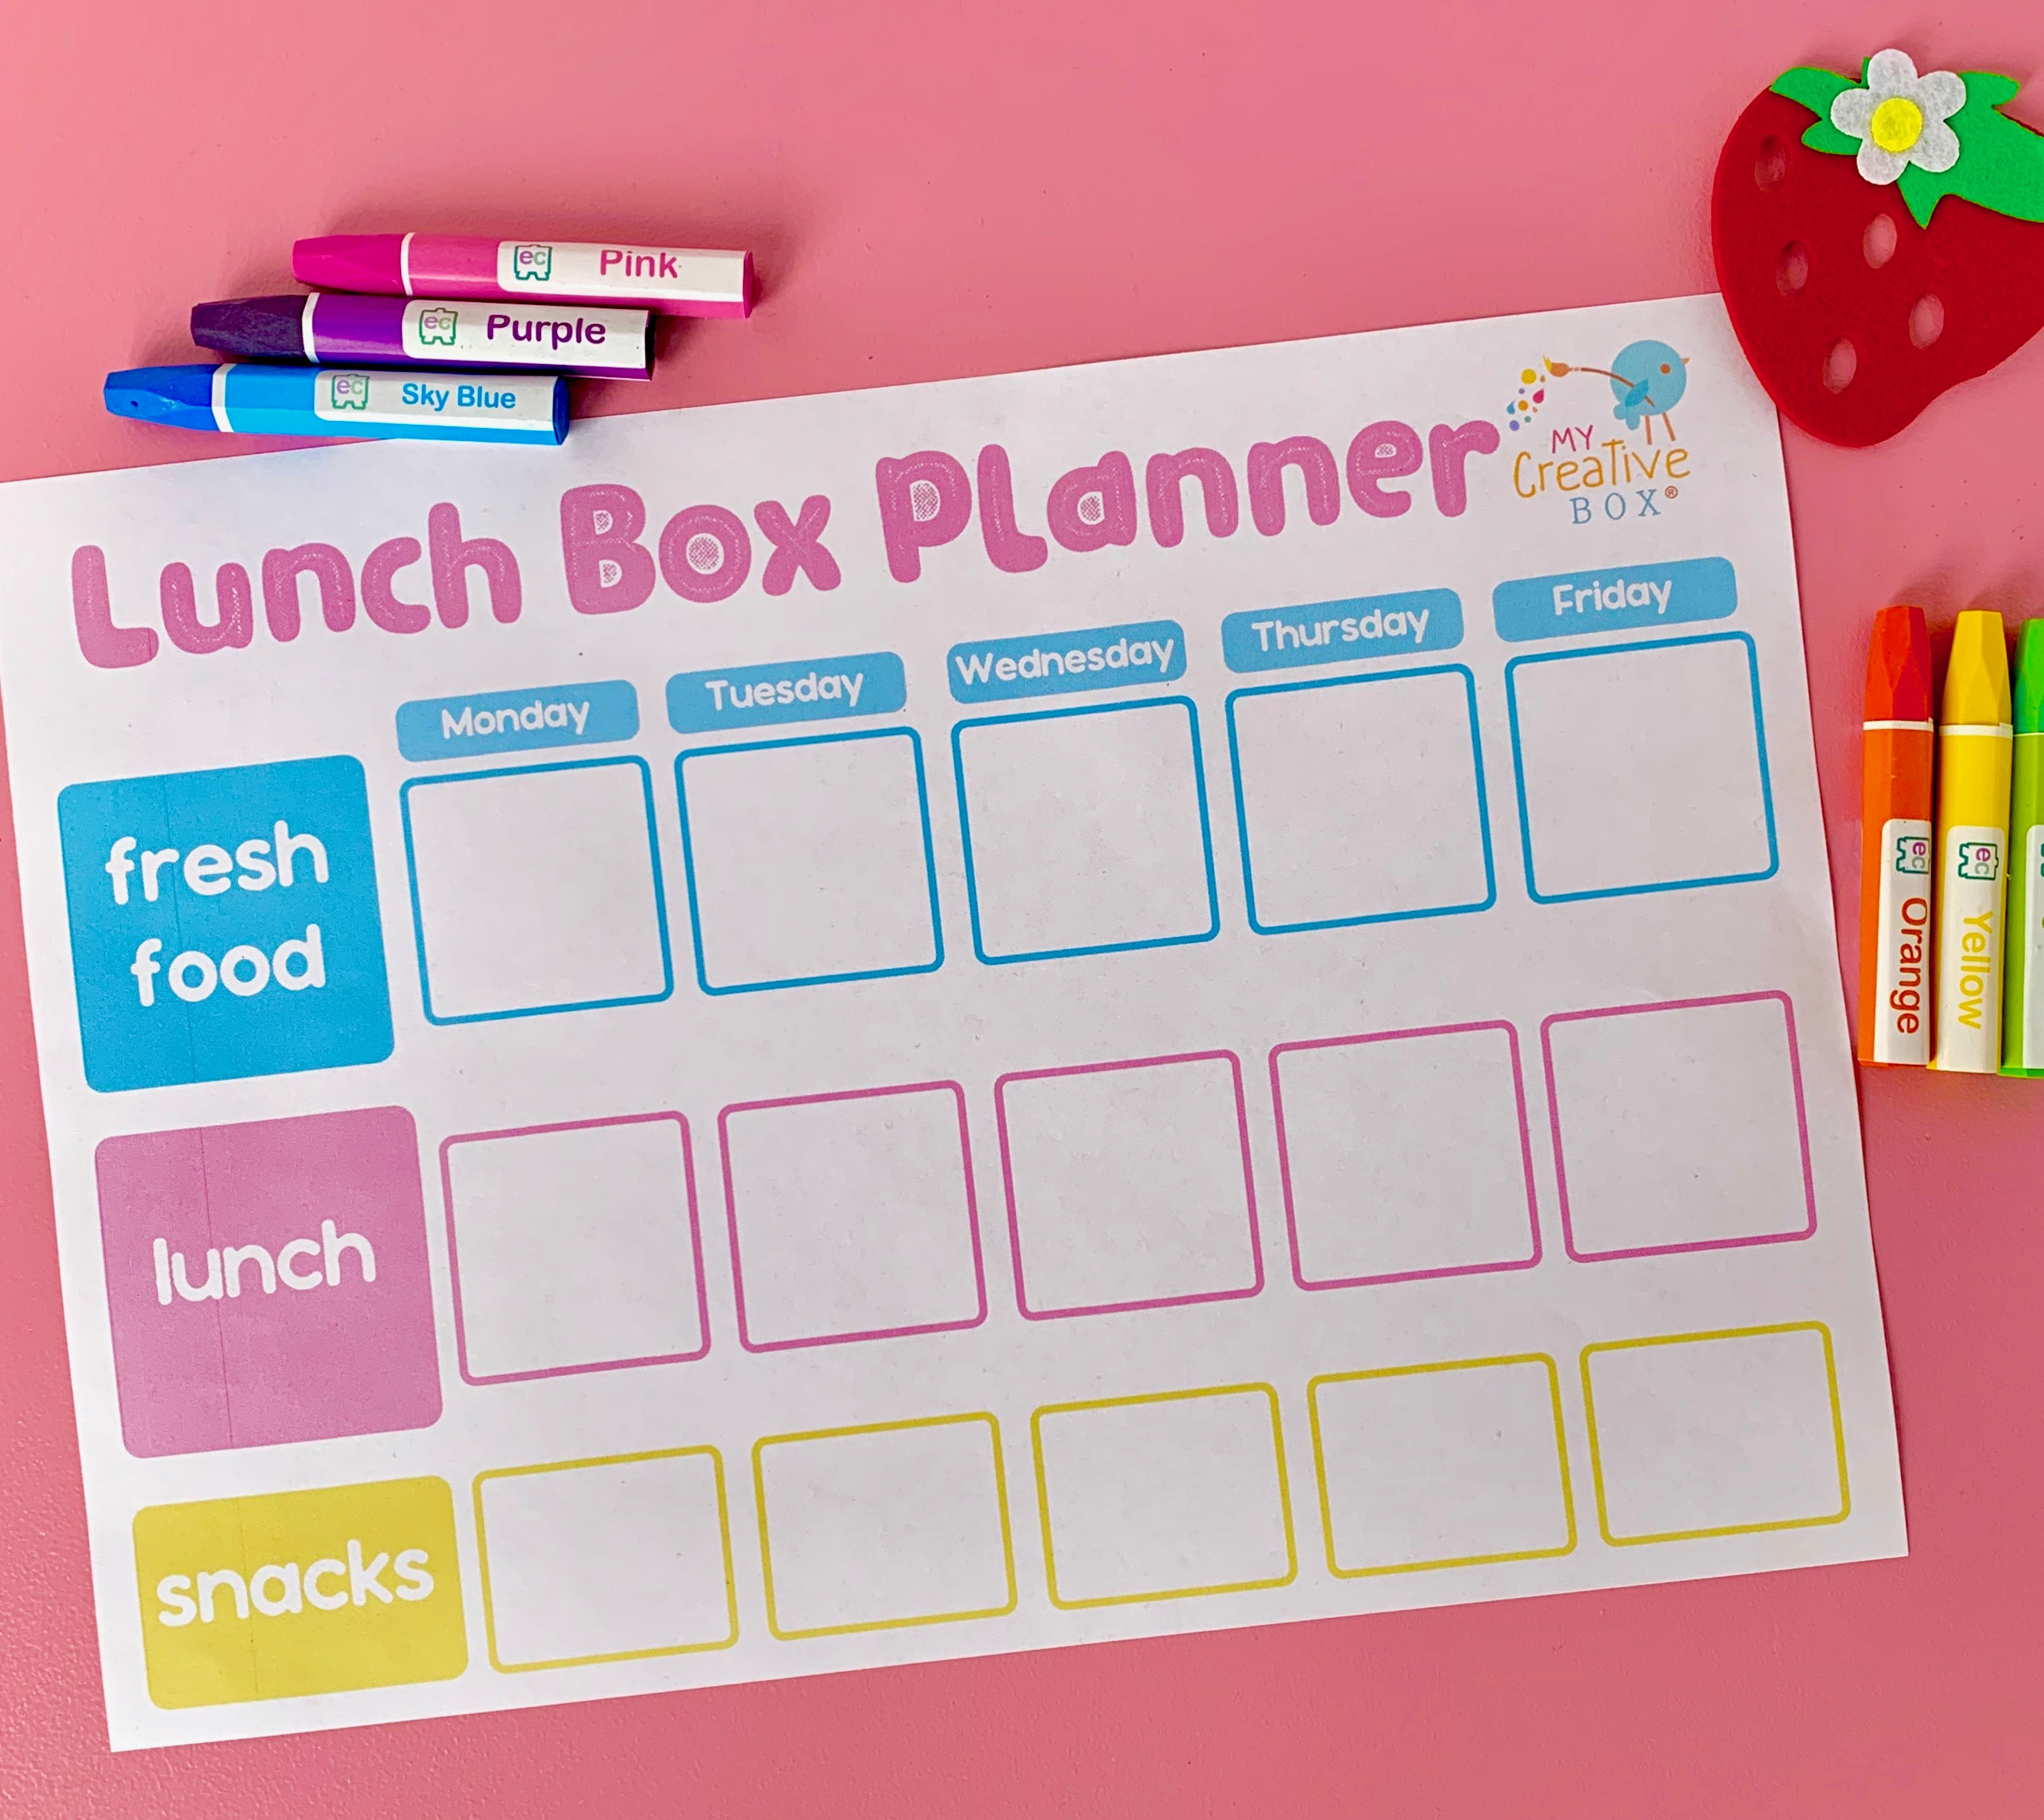 Lunch Box Planner printable FREE for busy families